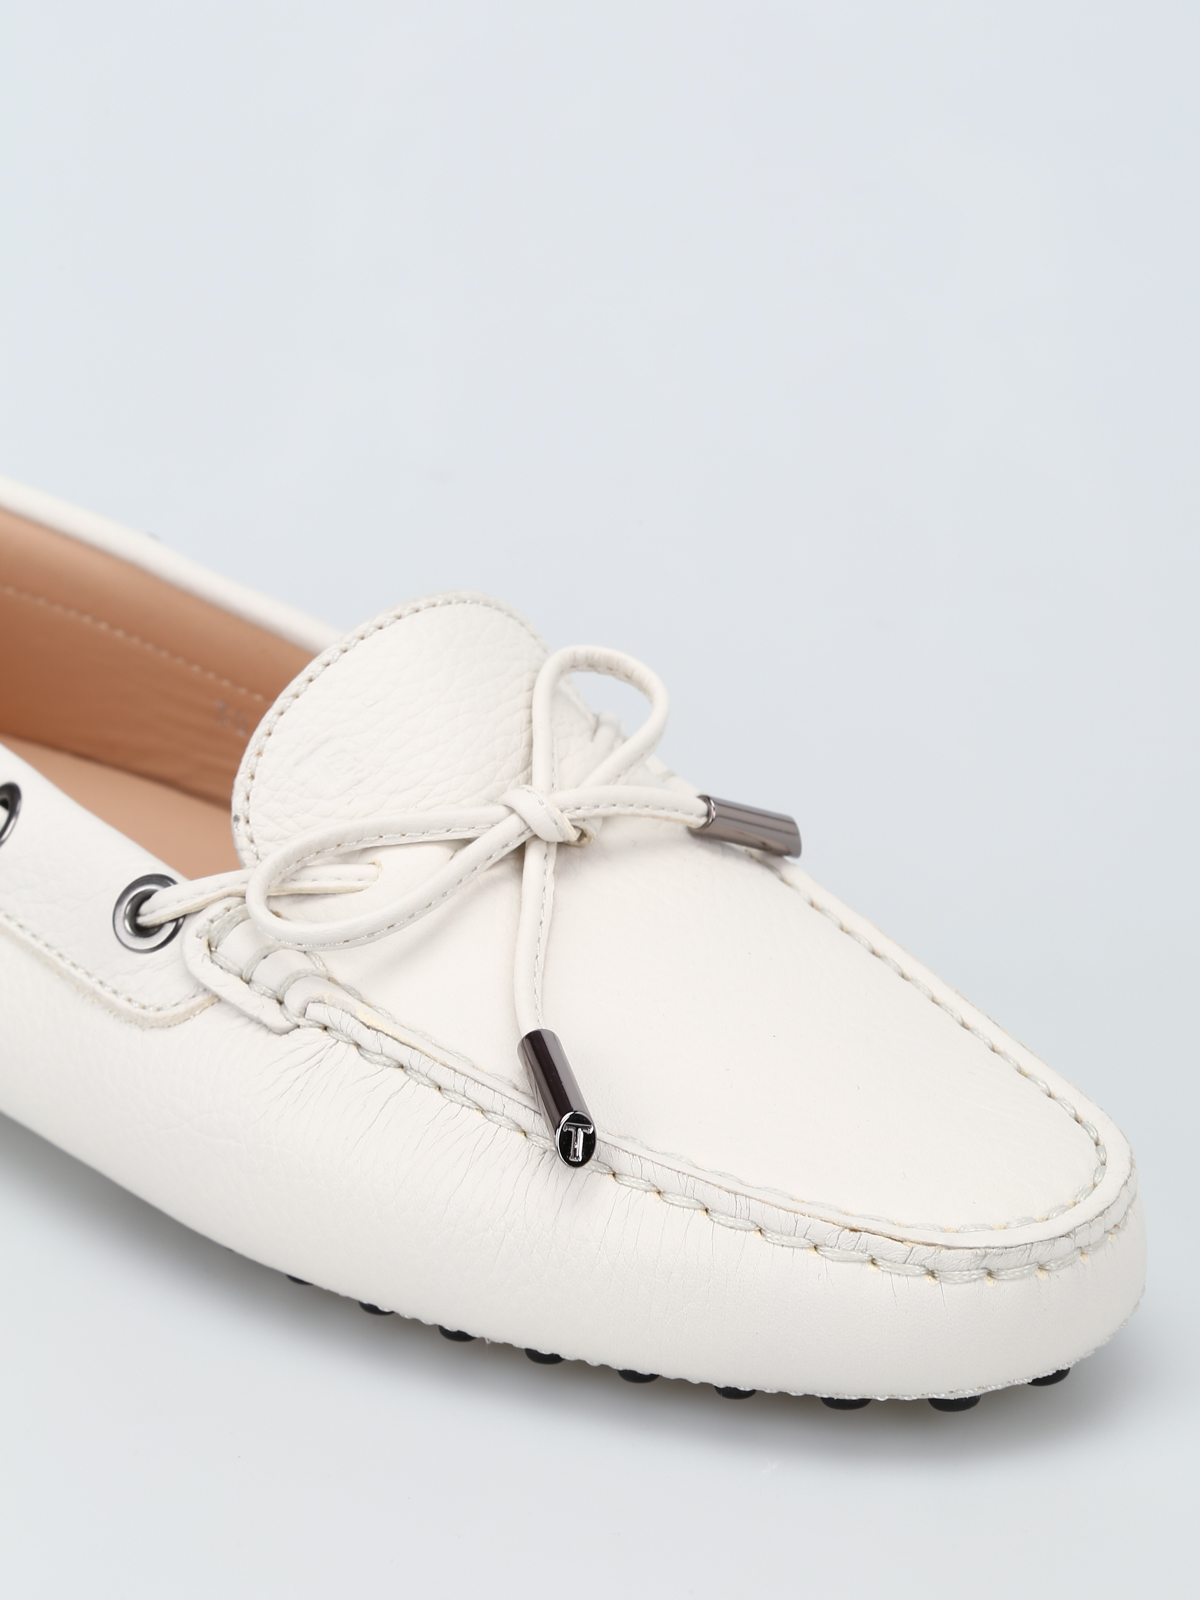 c6fca984504 Tod S - White grained leather loafers - Loafers   Slippers ...